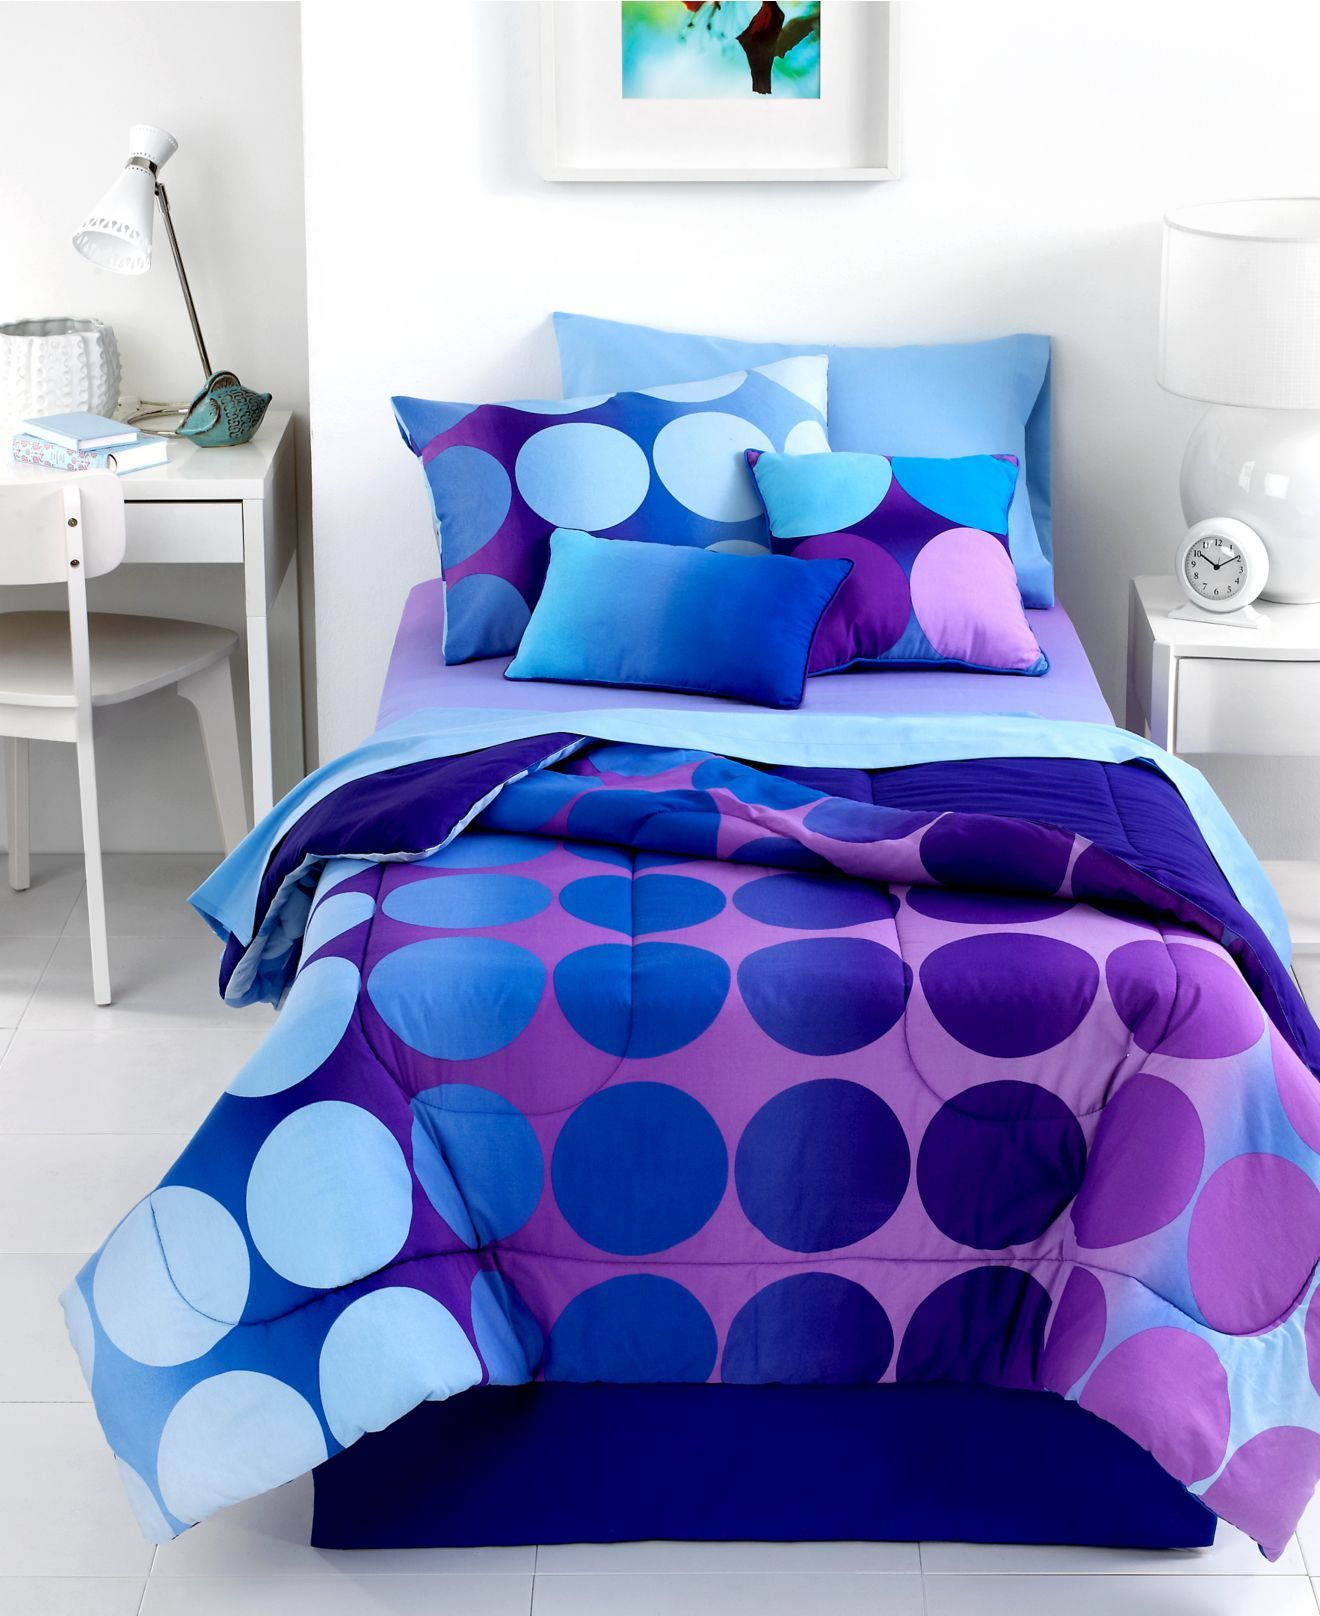 beautiful tween comforter and colorful single beds coral sheet cheap teen bed bedroom pink neon sets bedding bedspreads gold quilt